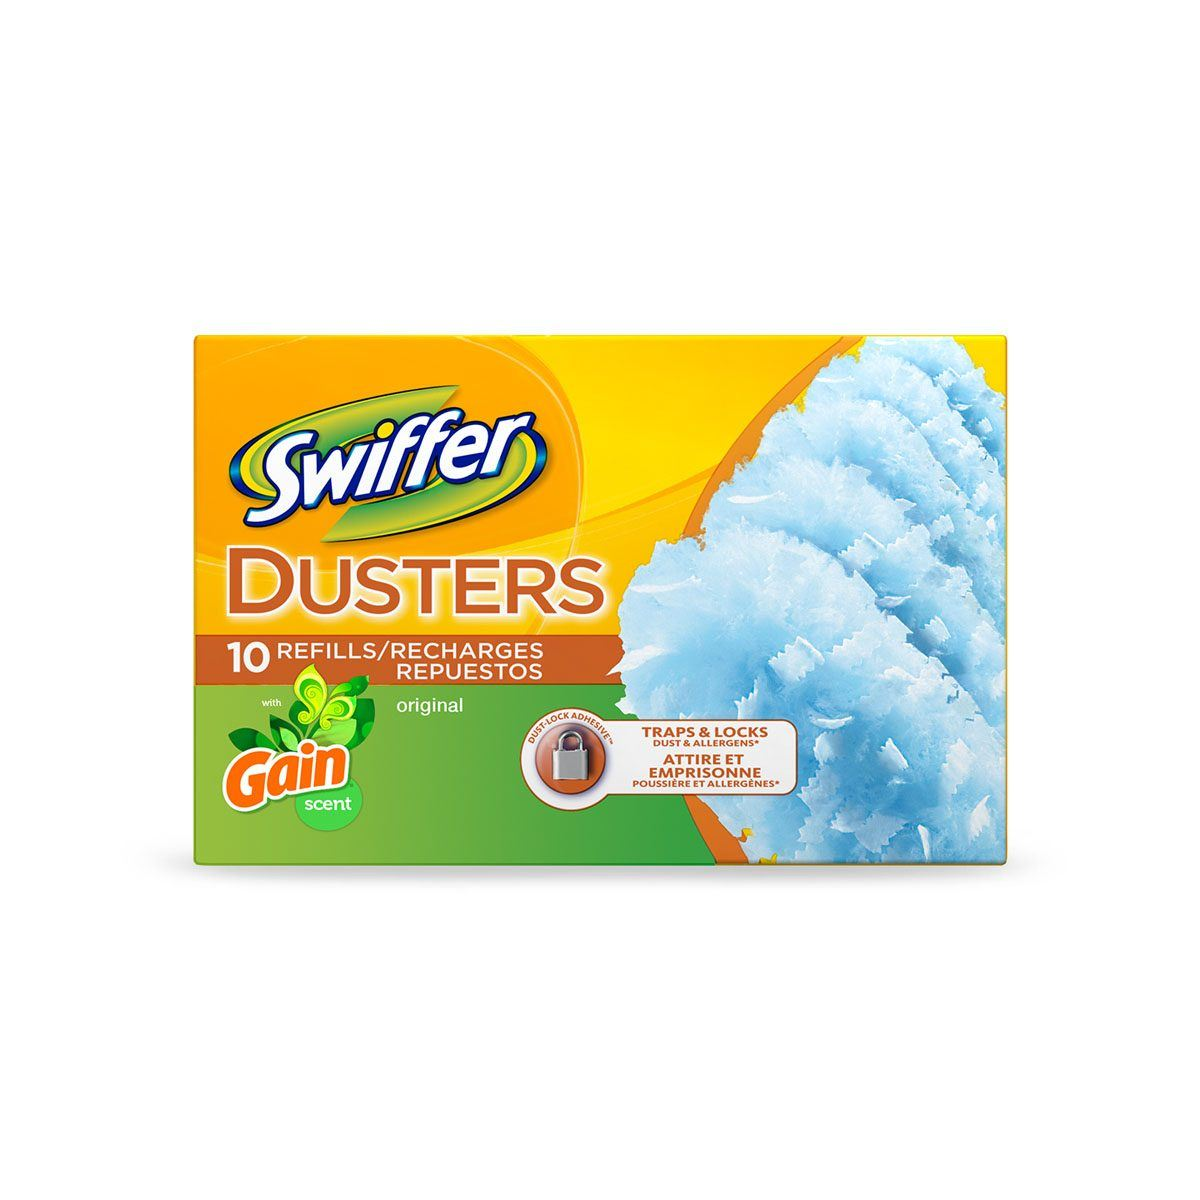 Swiffer Duster Refills With Gain